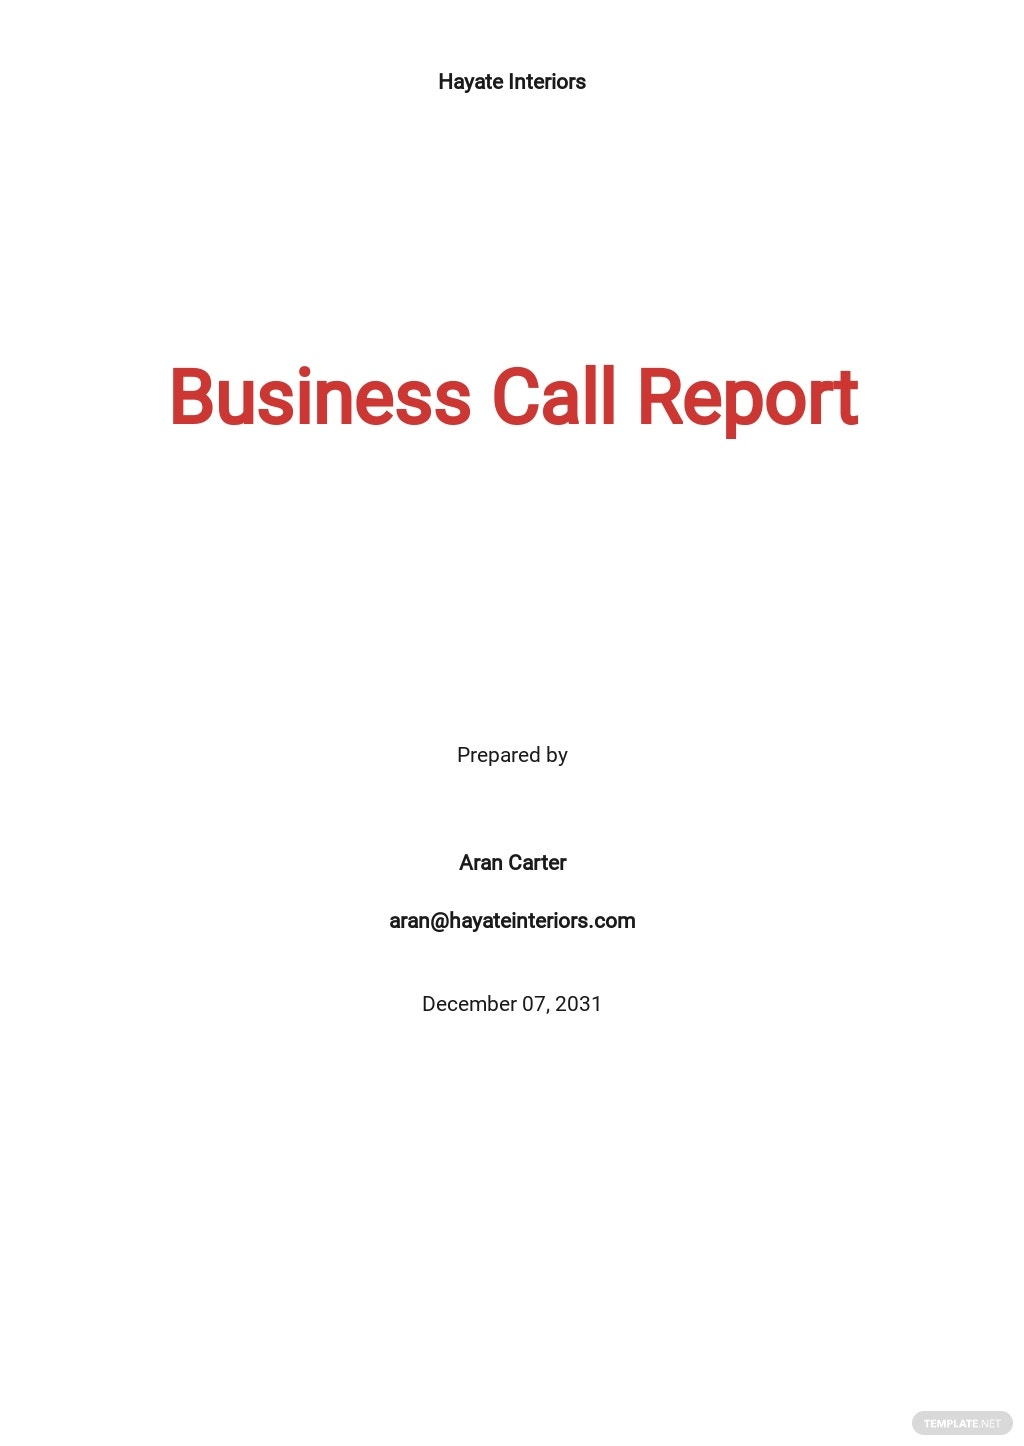 Free Business Call Report Template.jpe